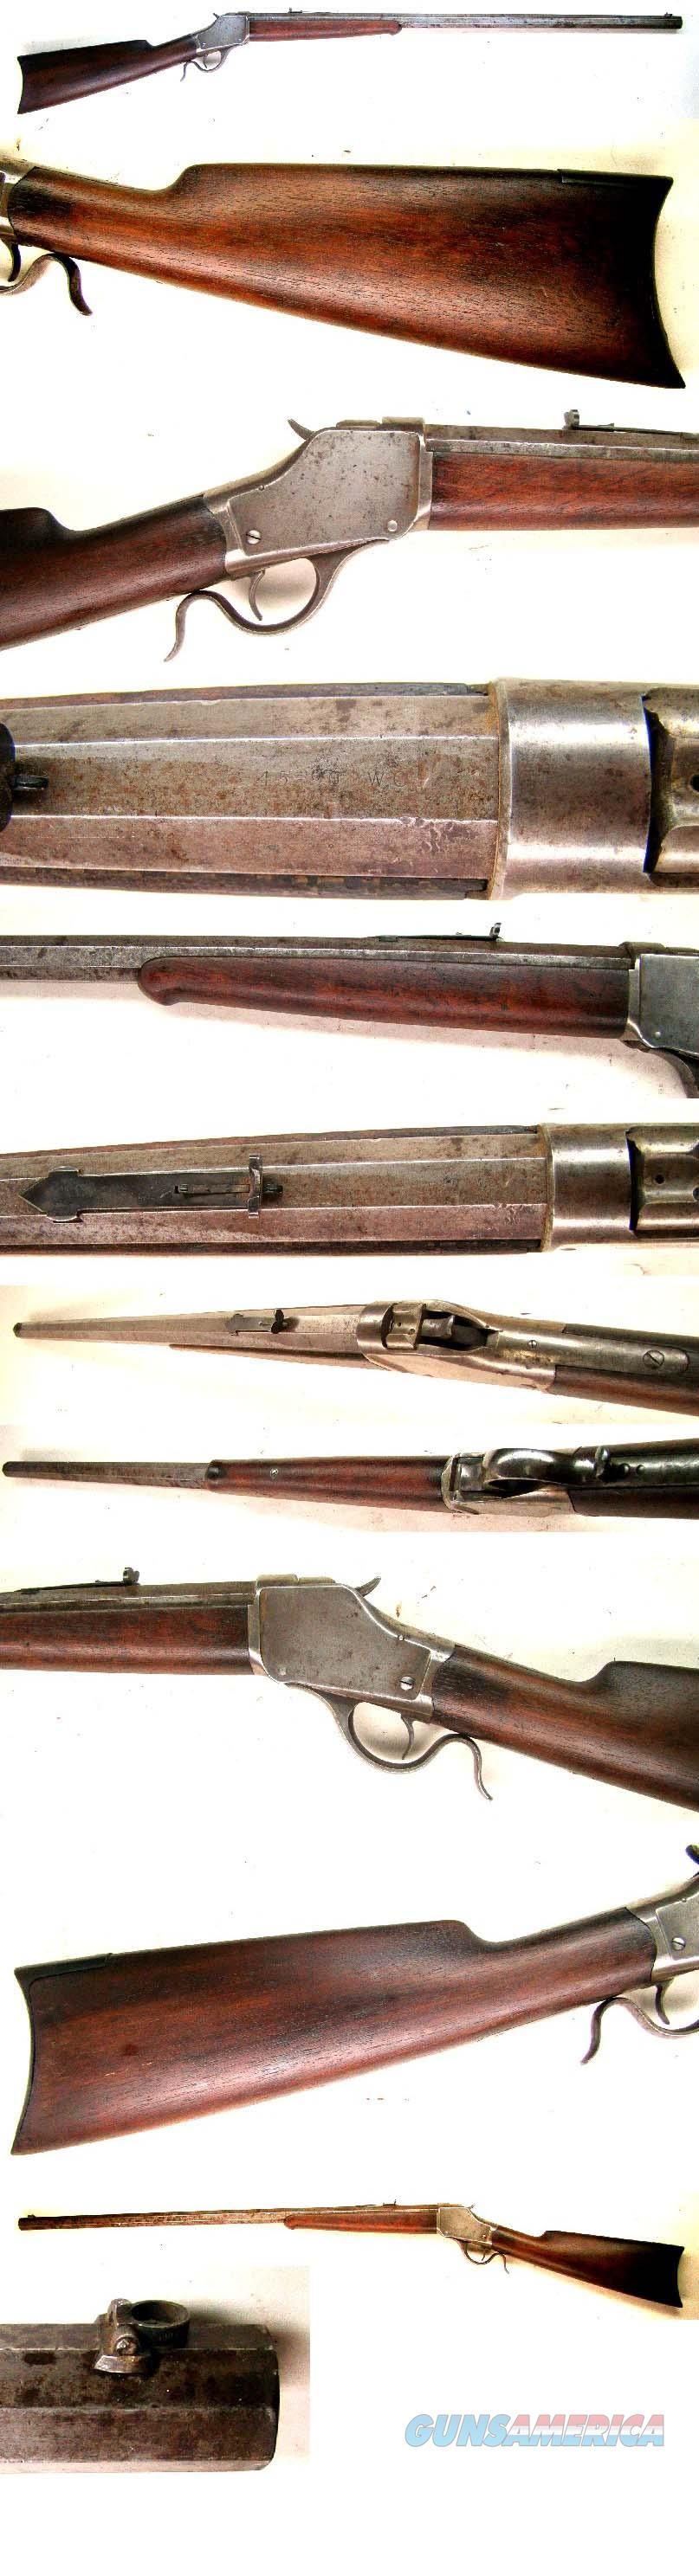 Winchester Hi Wall Sporting Rifle  45-90  Guns > Rifles > Winchester Rifles - Pre-1899 Bolt/Single Shot